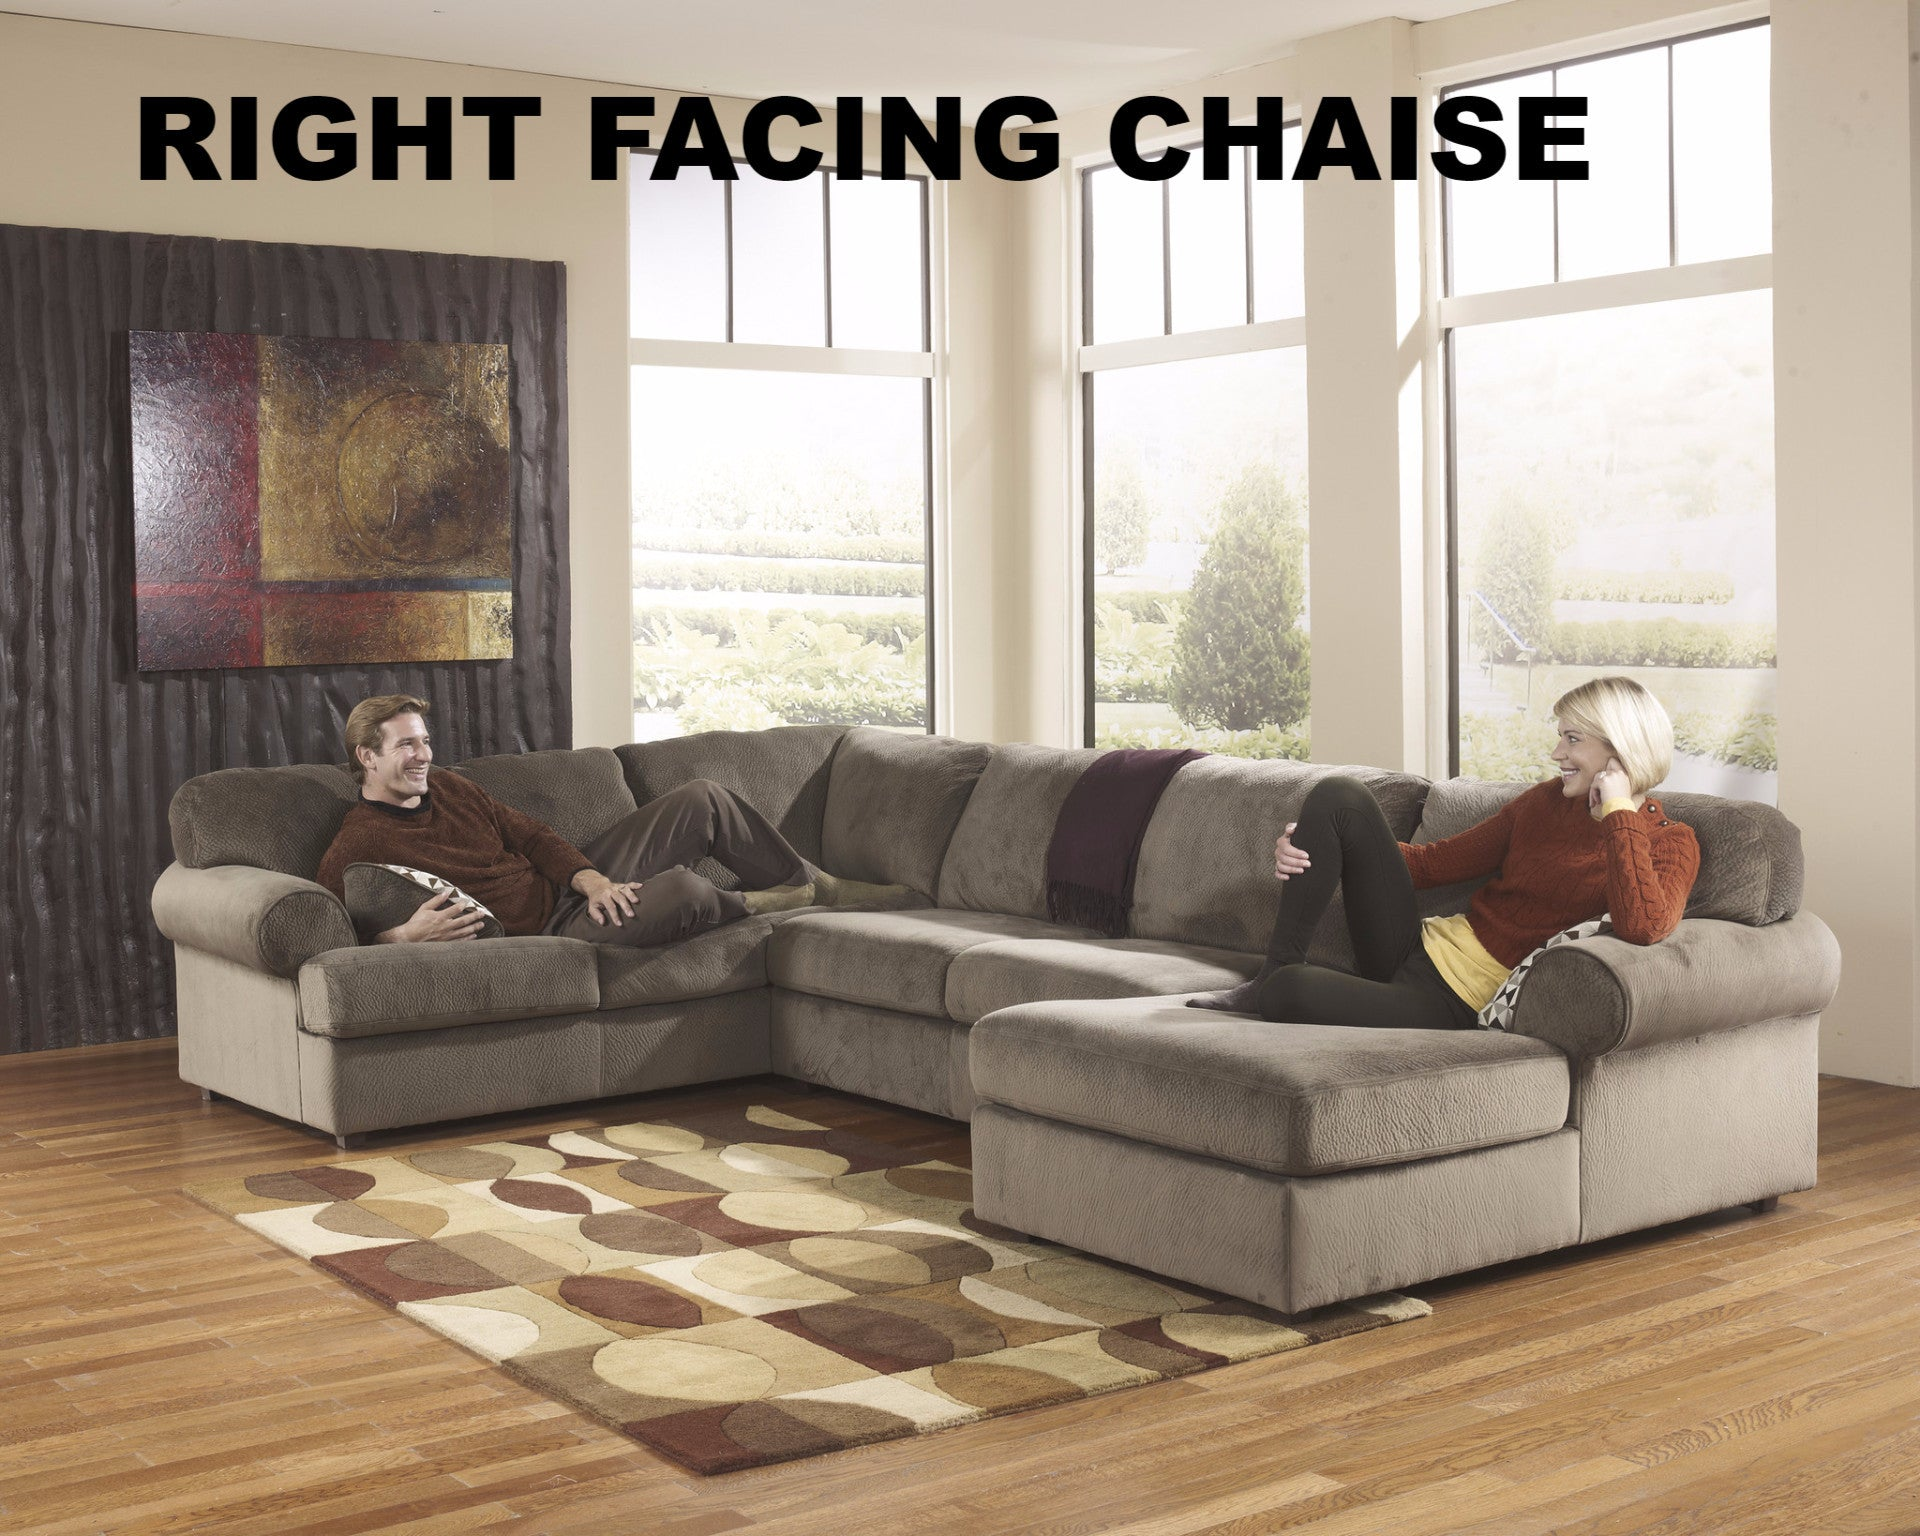 Jessa place 3 piece sectional - Jessa Place Sectional 3980216 By Ashley Furniture